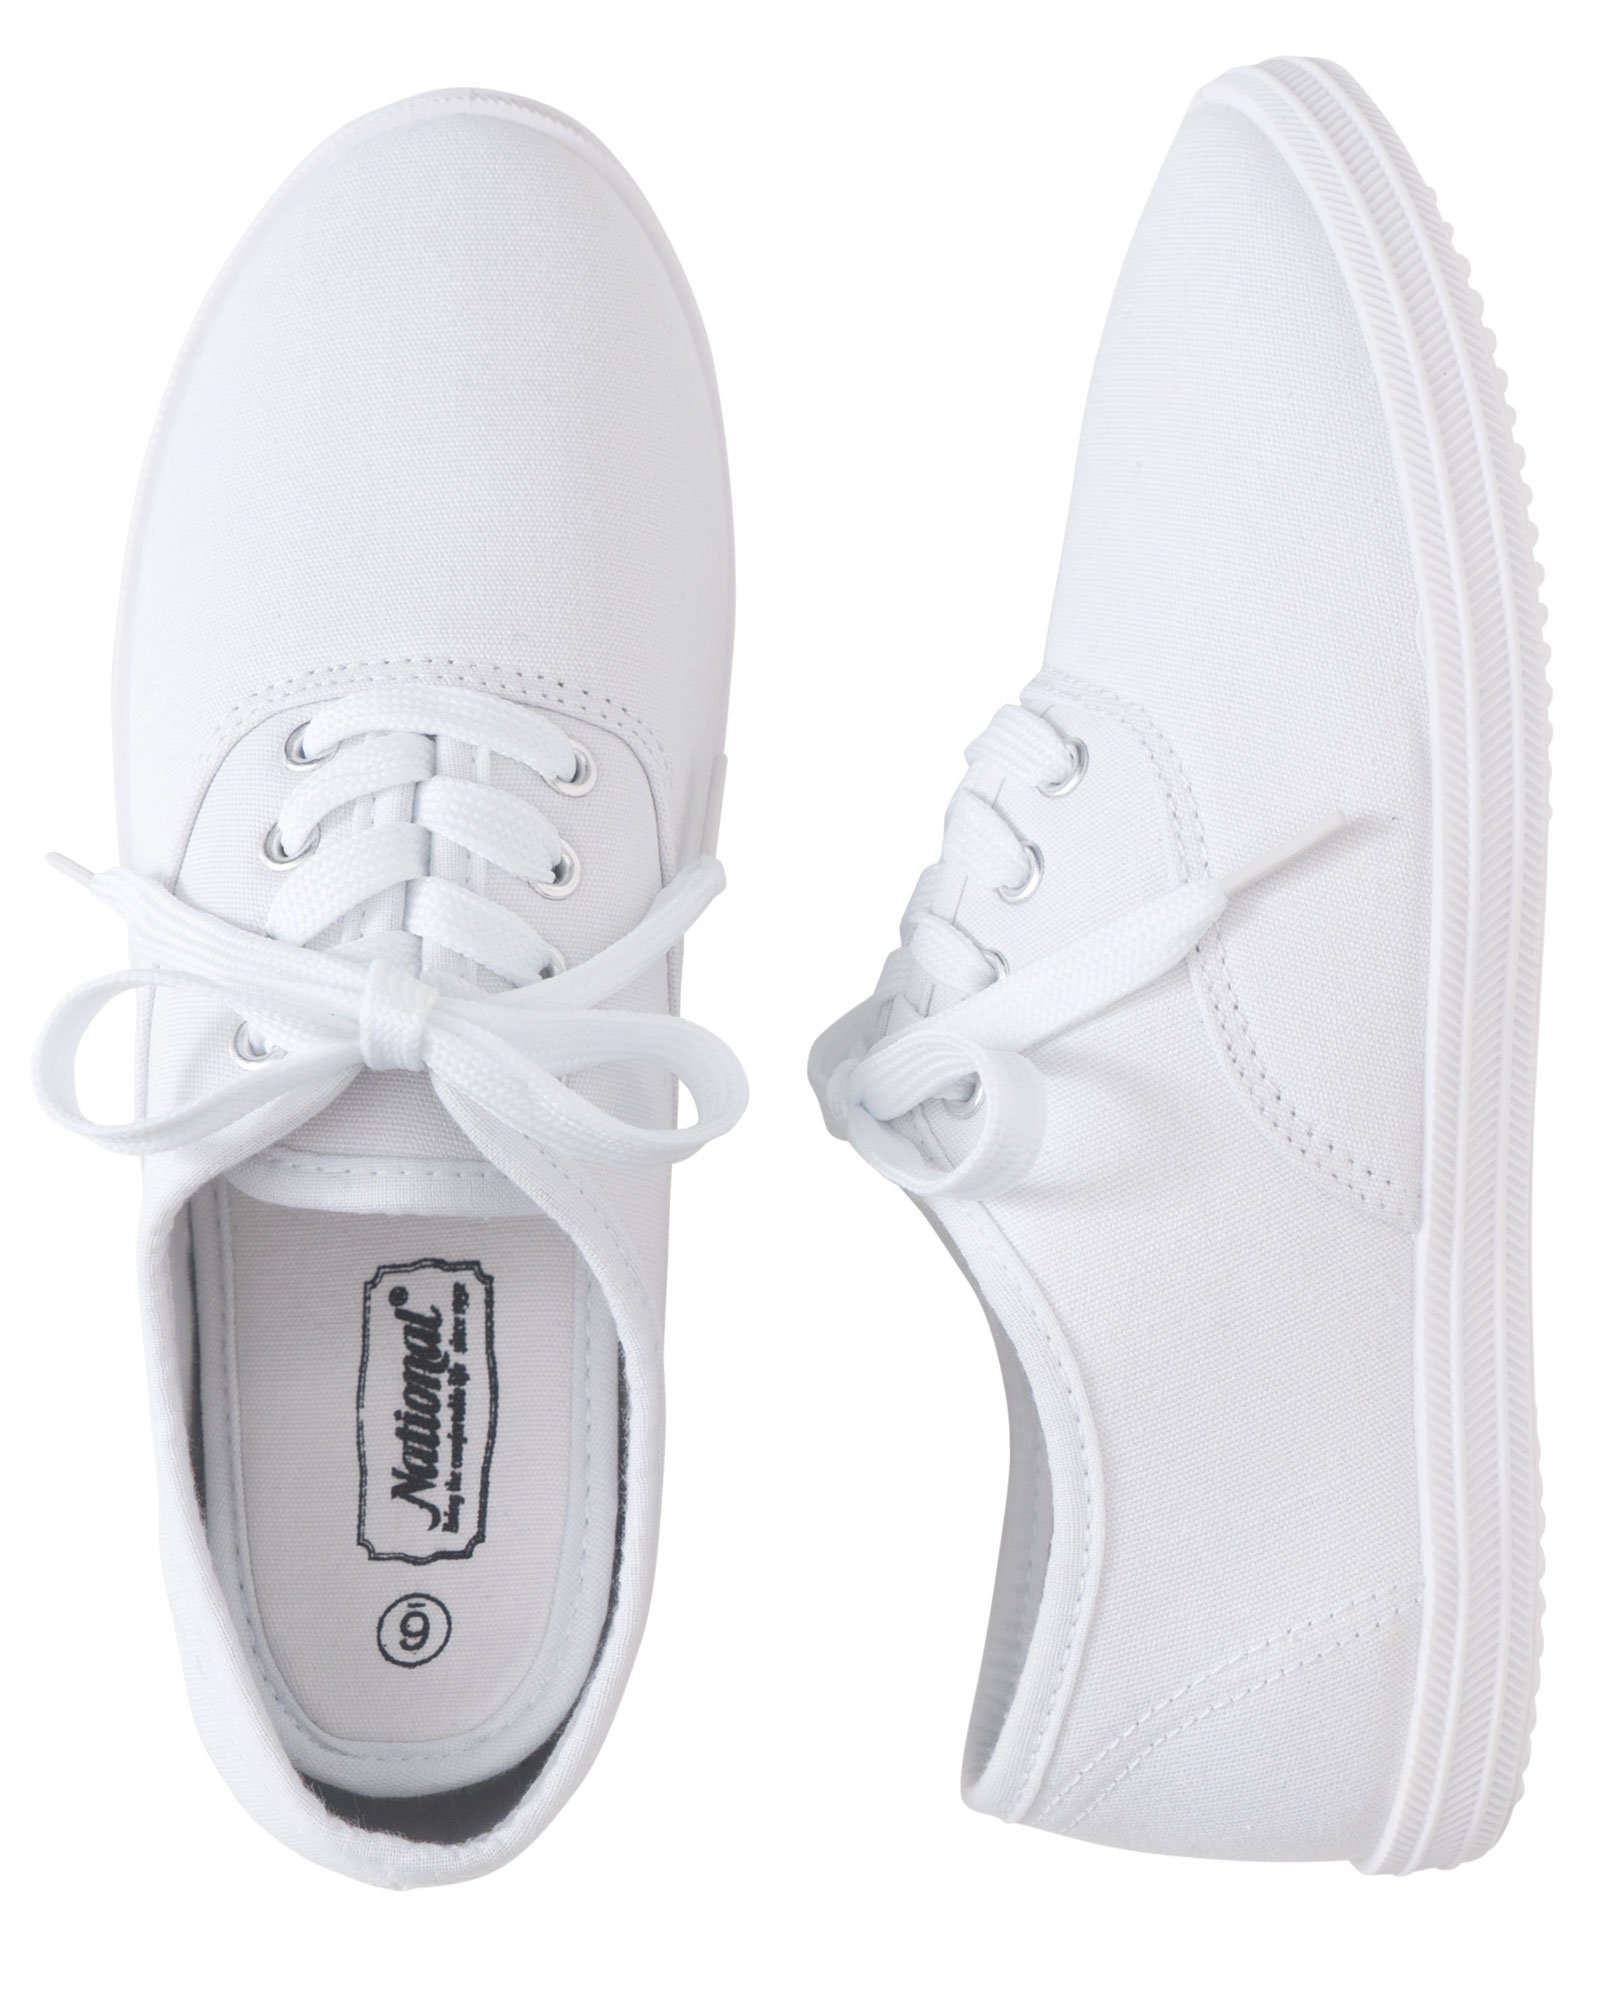 National Classic Canvas Sneakers, White, 8 1/2M